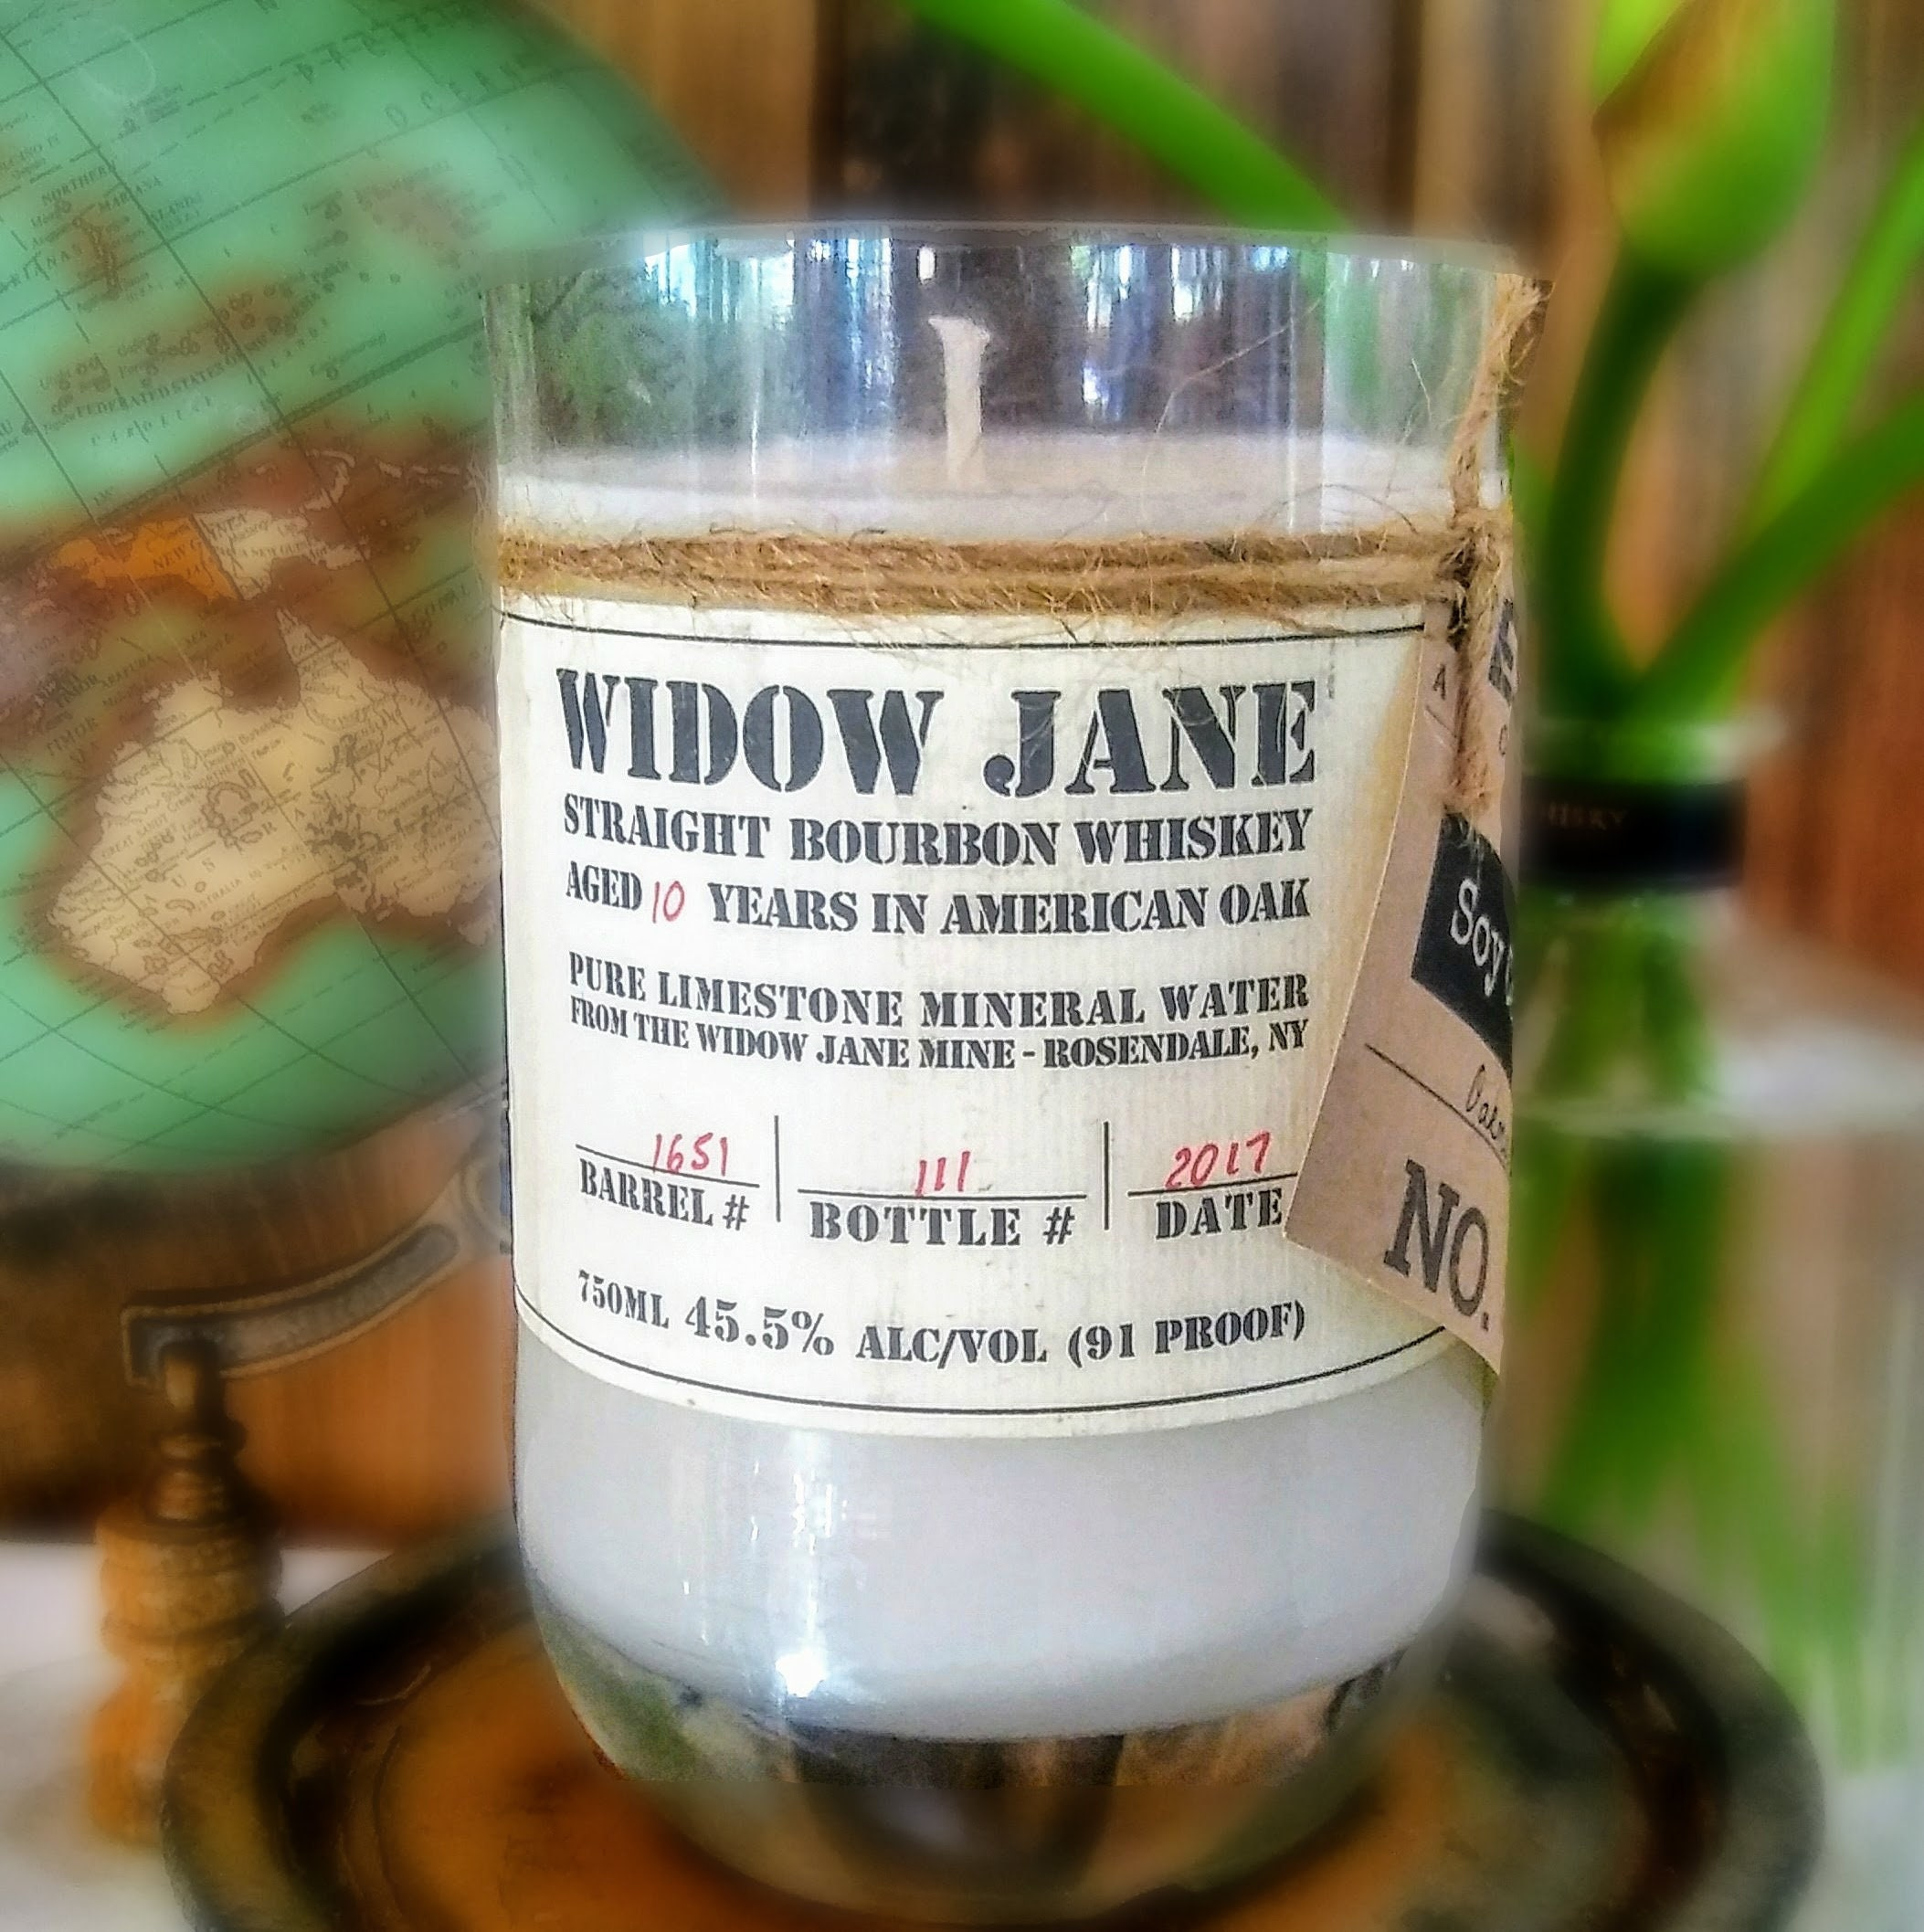 Scented Soy Candle Liquor Bottle Widow Jane Recycled Gift Ideas Birthday Wax Personalized